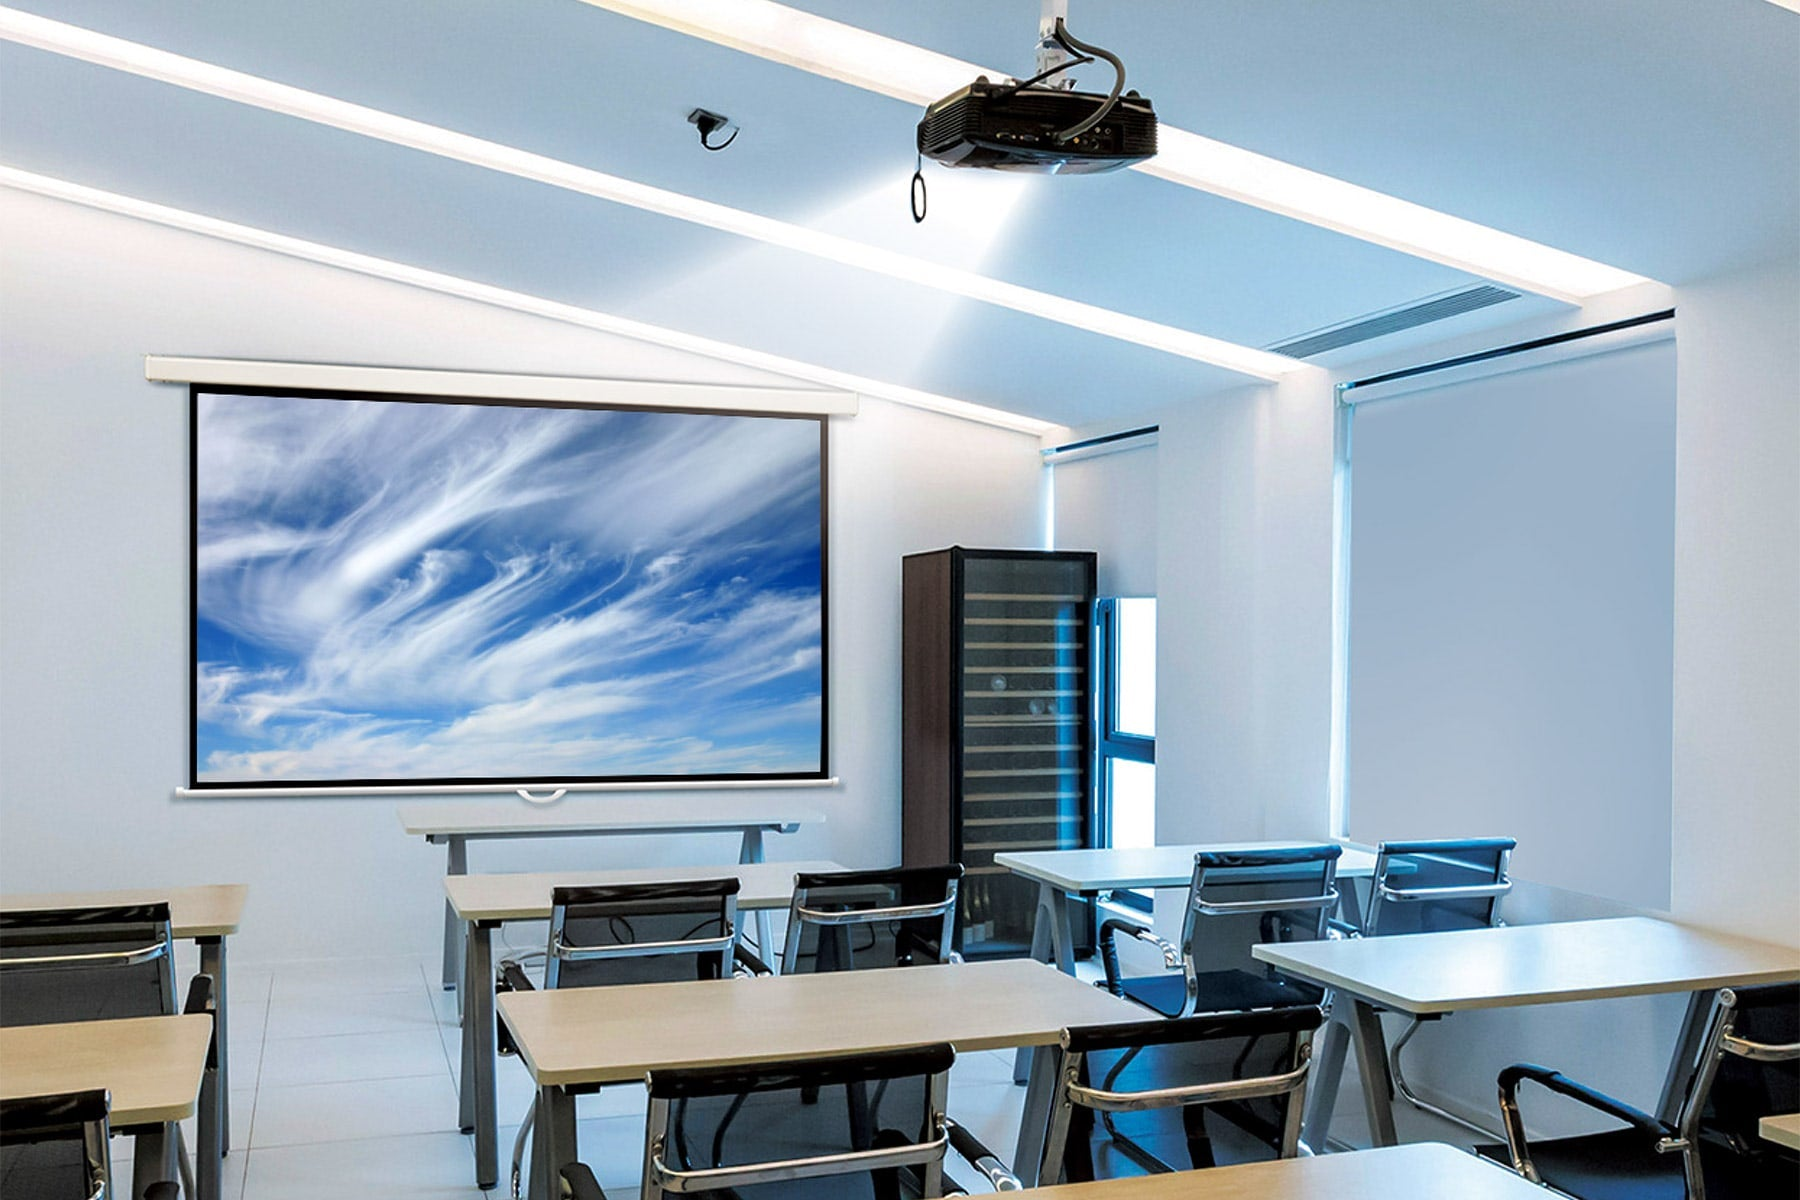 Classroom with Nimbus manual pull down projector screen